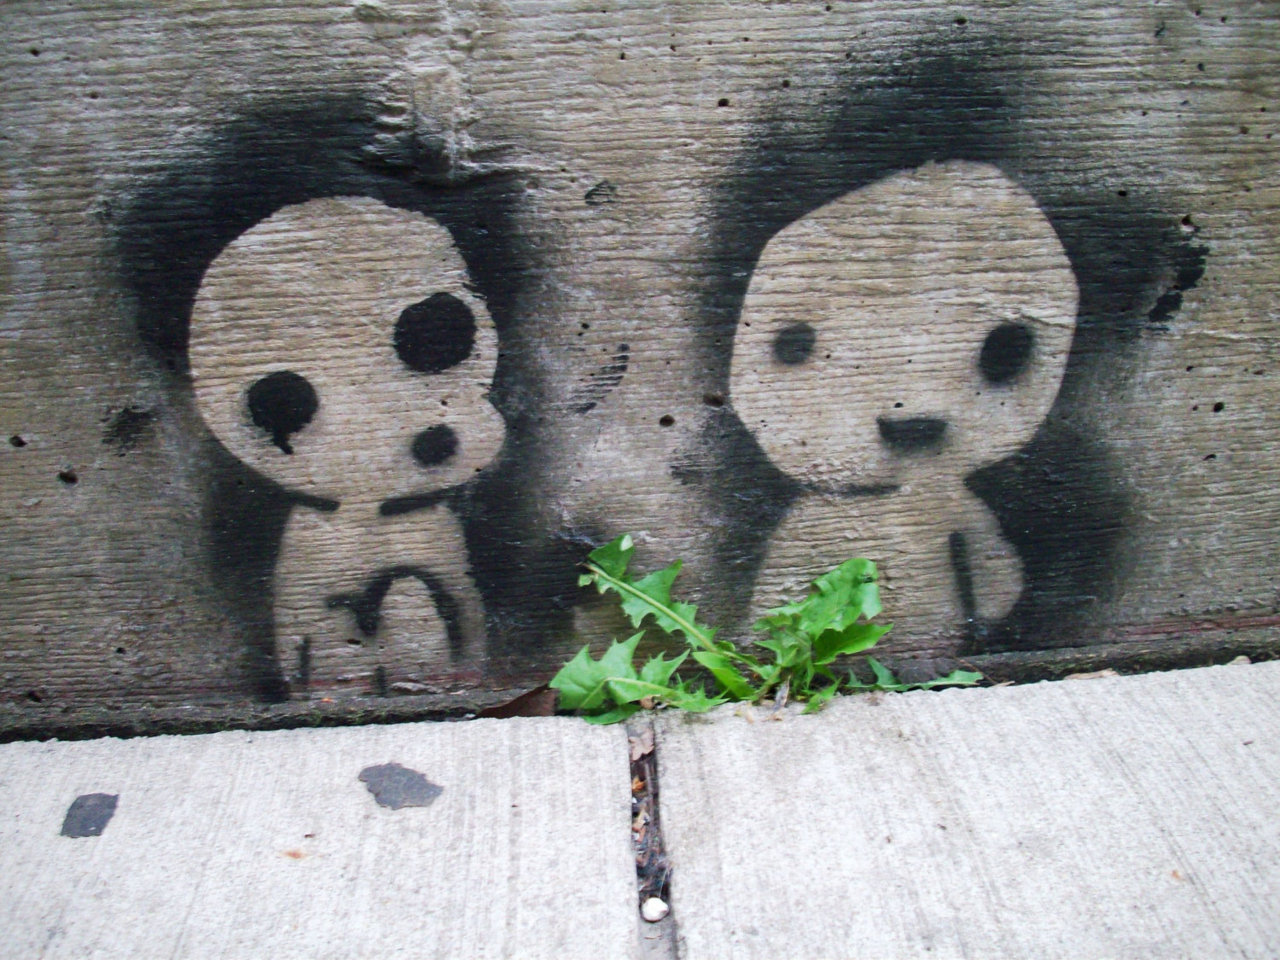 Kodama graffiti (available as a magnet from chikalookate on Etsy)